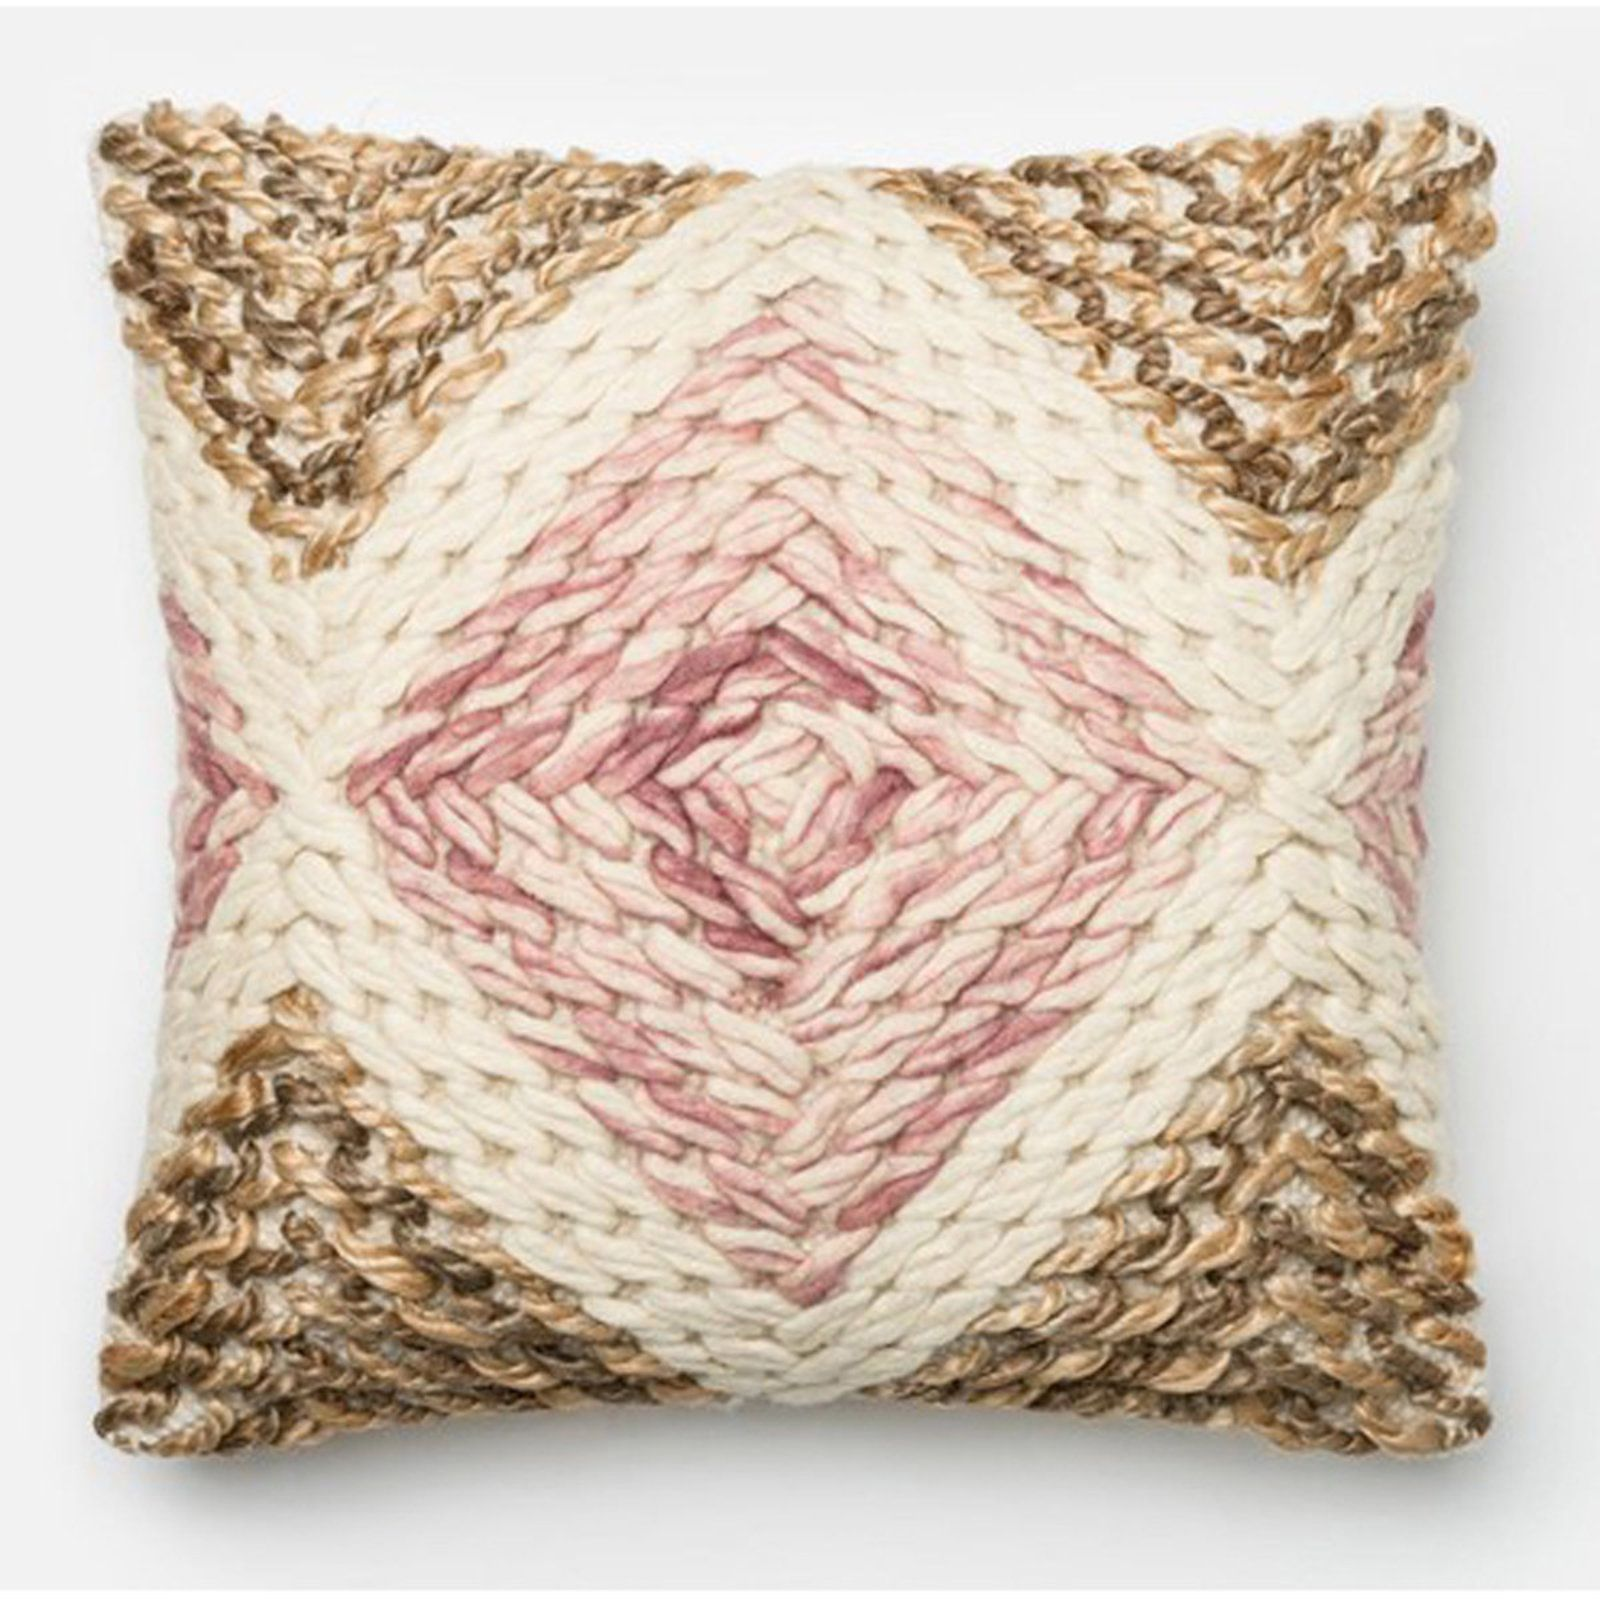 southwestern rizzy pillows hayneedle woven pillow pattern product traditional throw master home cfm decorative patten